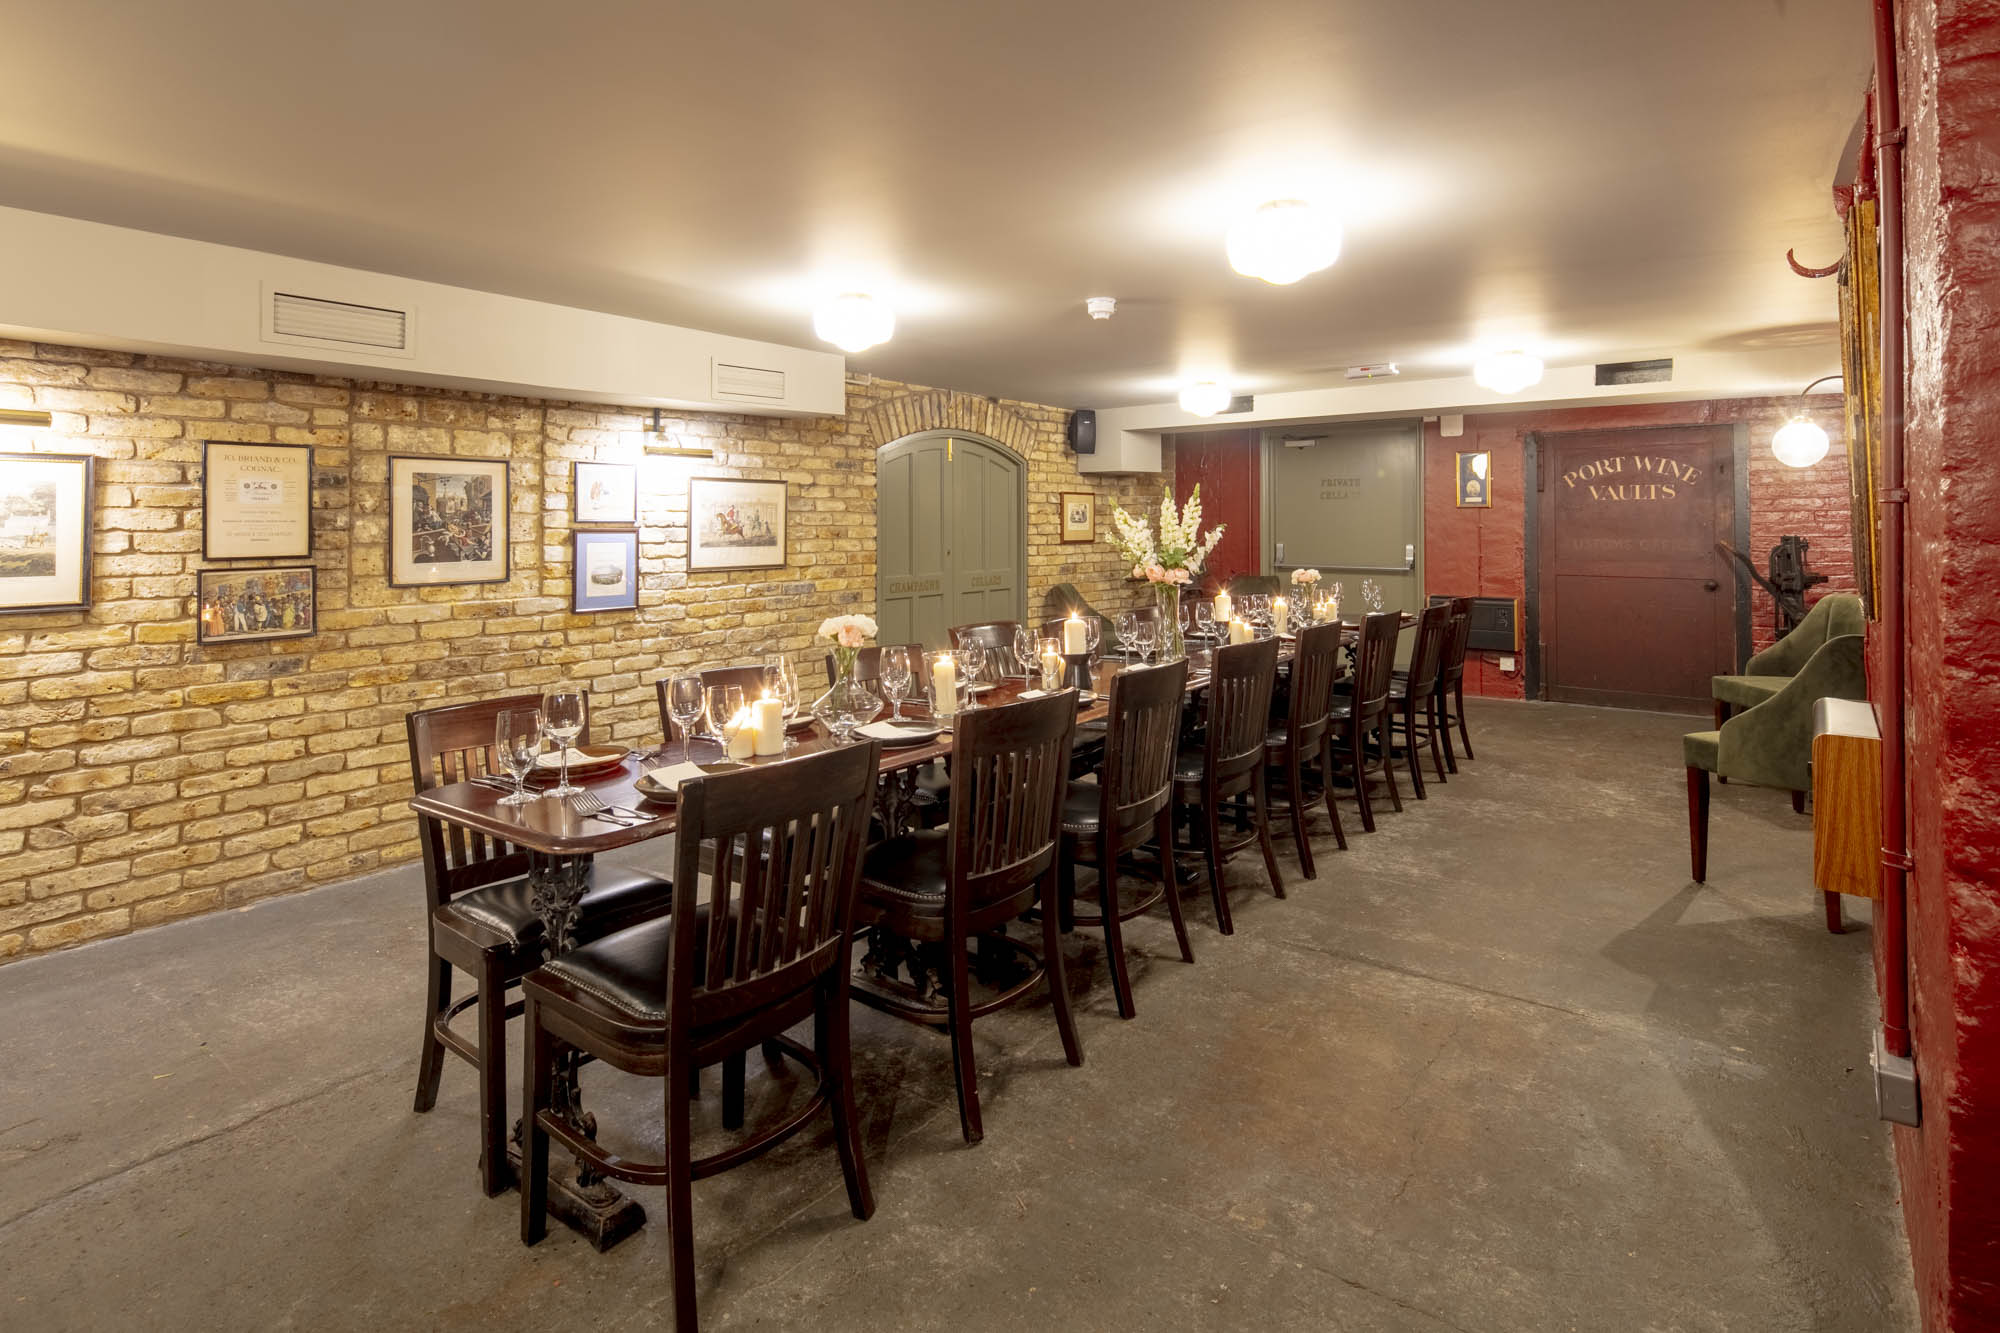 Private Victoria cellar room at Davy's Wine Vaults